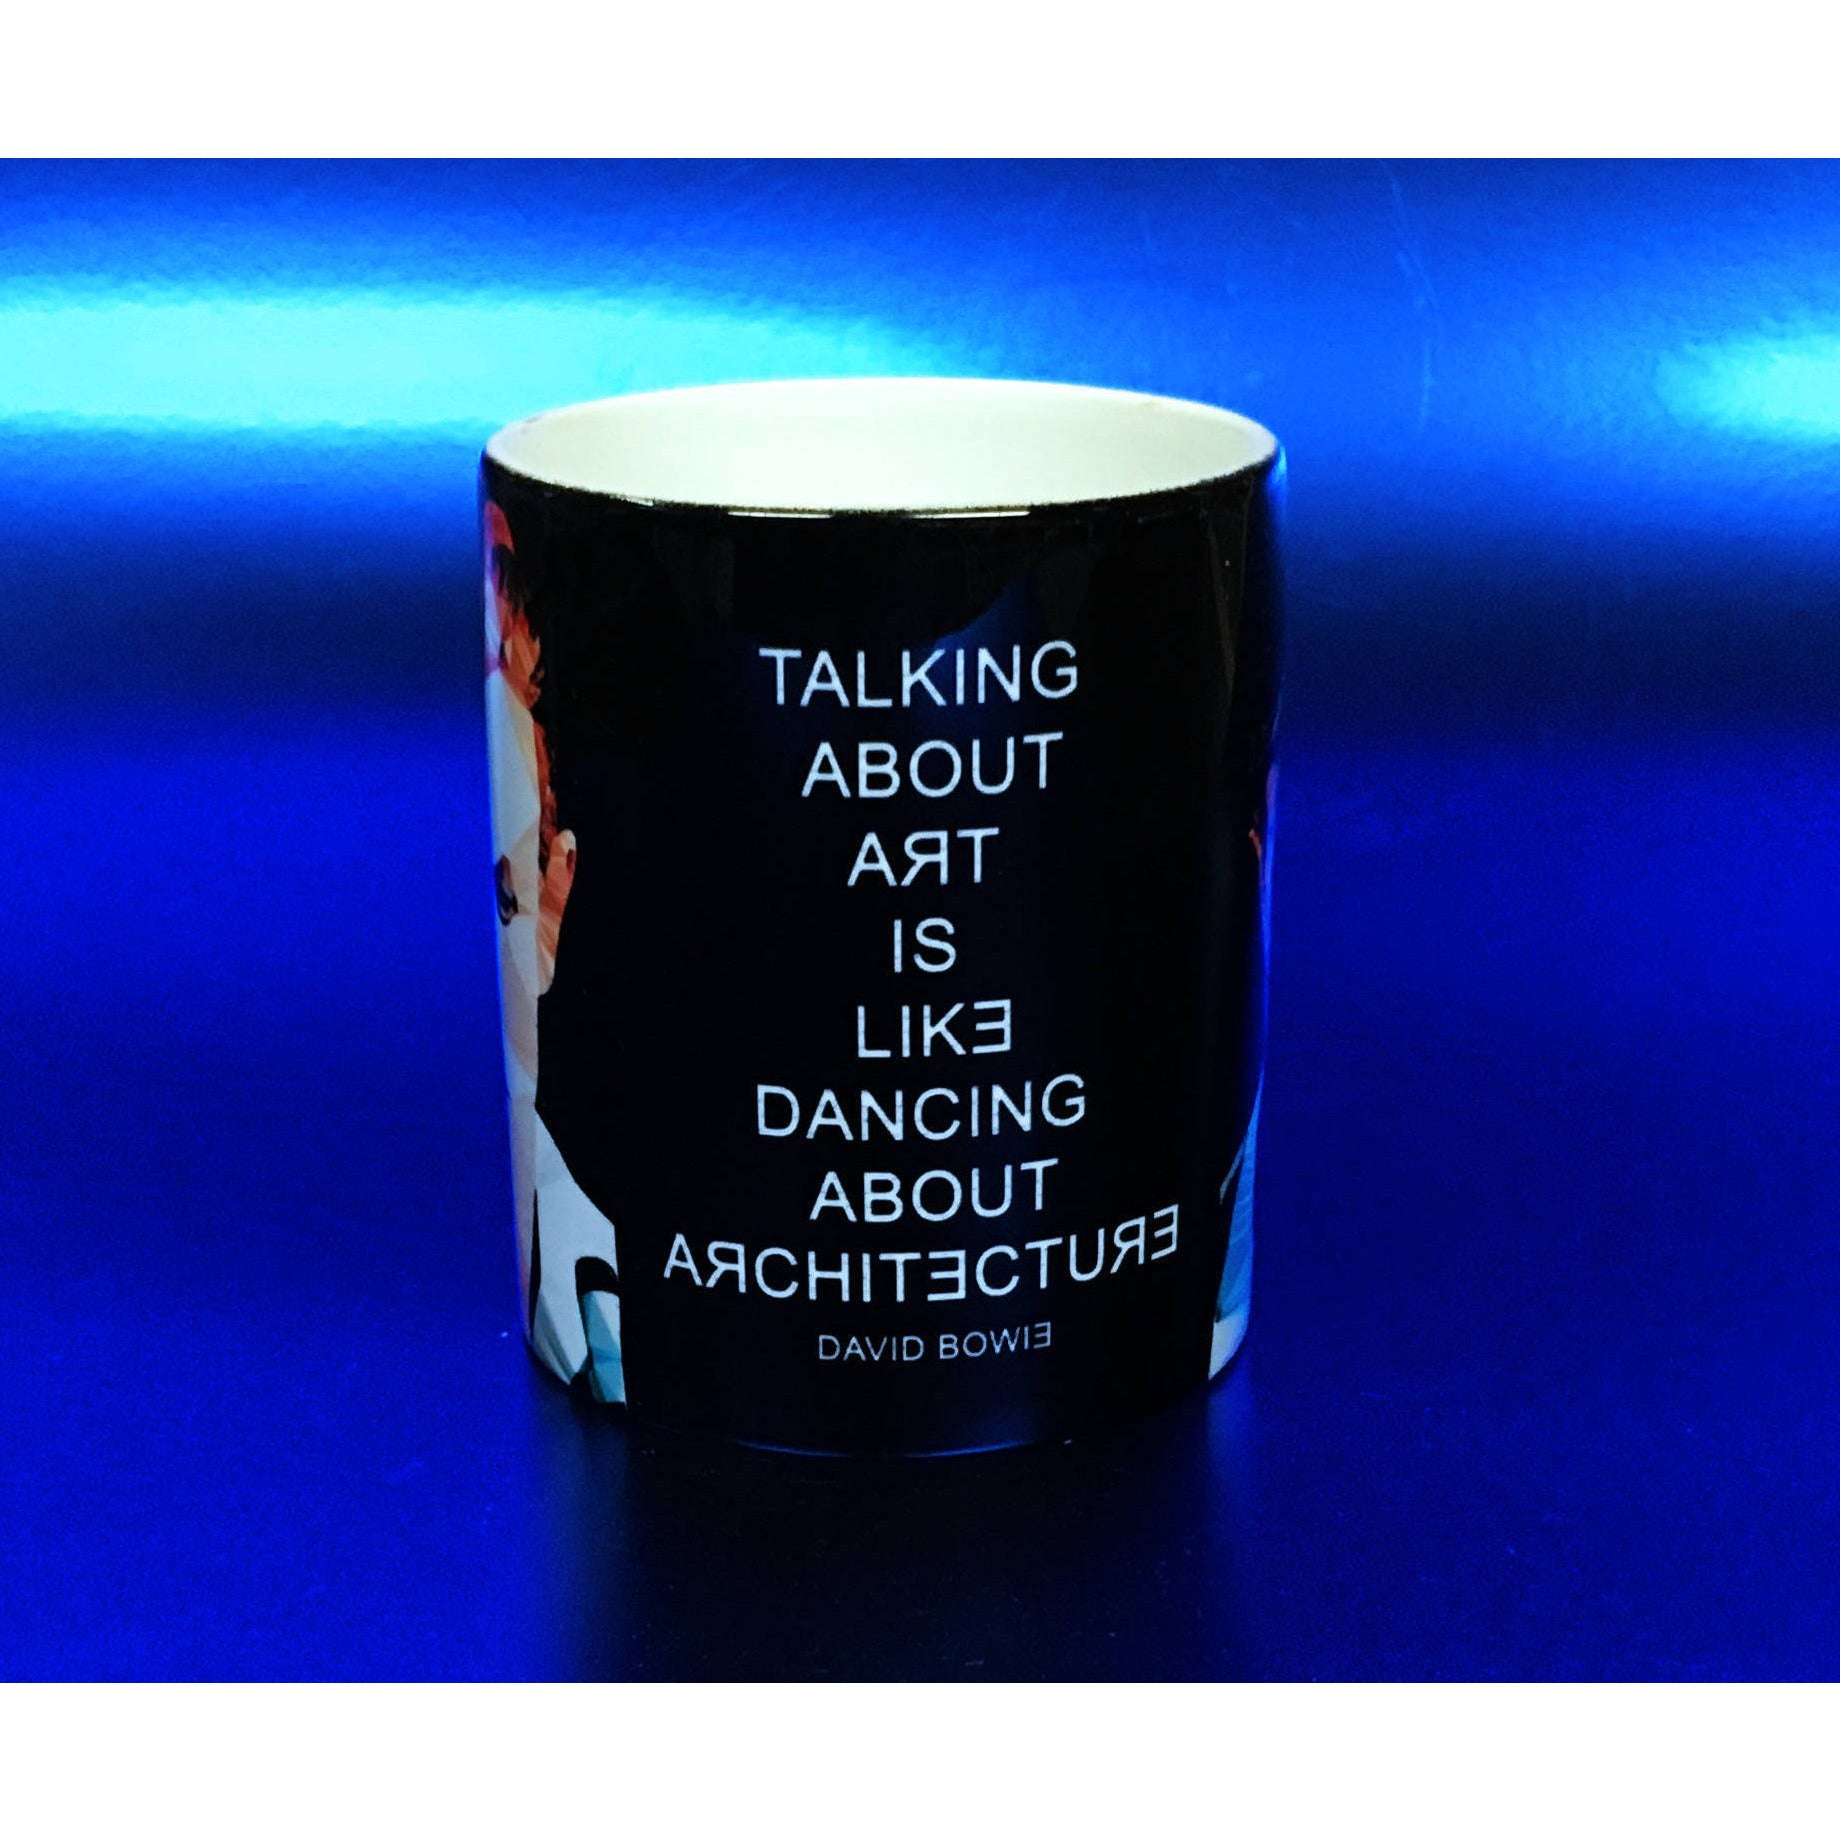 David Bowie Mug by Baiba Auria - Egoiste Gallery - Art Gallery in Manchester City Centre